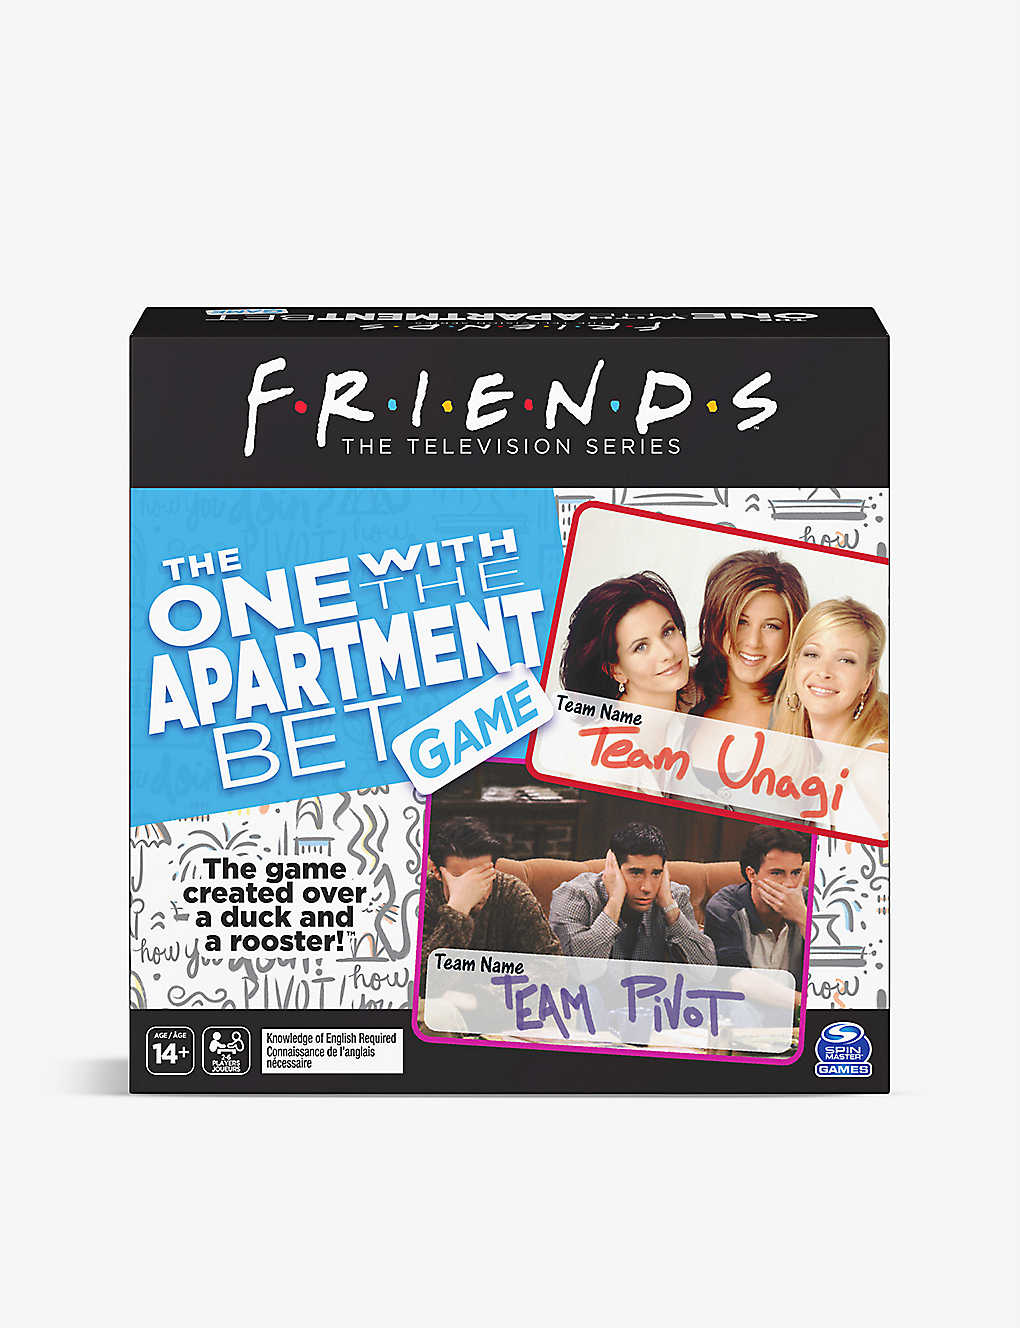 BOARD GAMES: Friends: They Lose Apartment board game